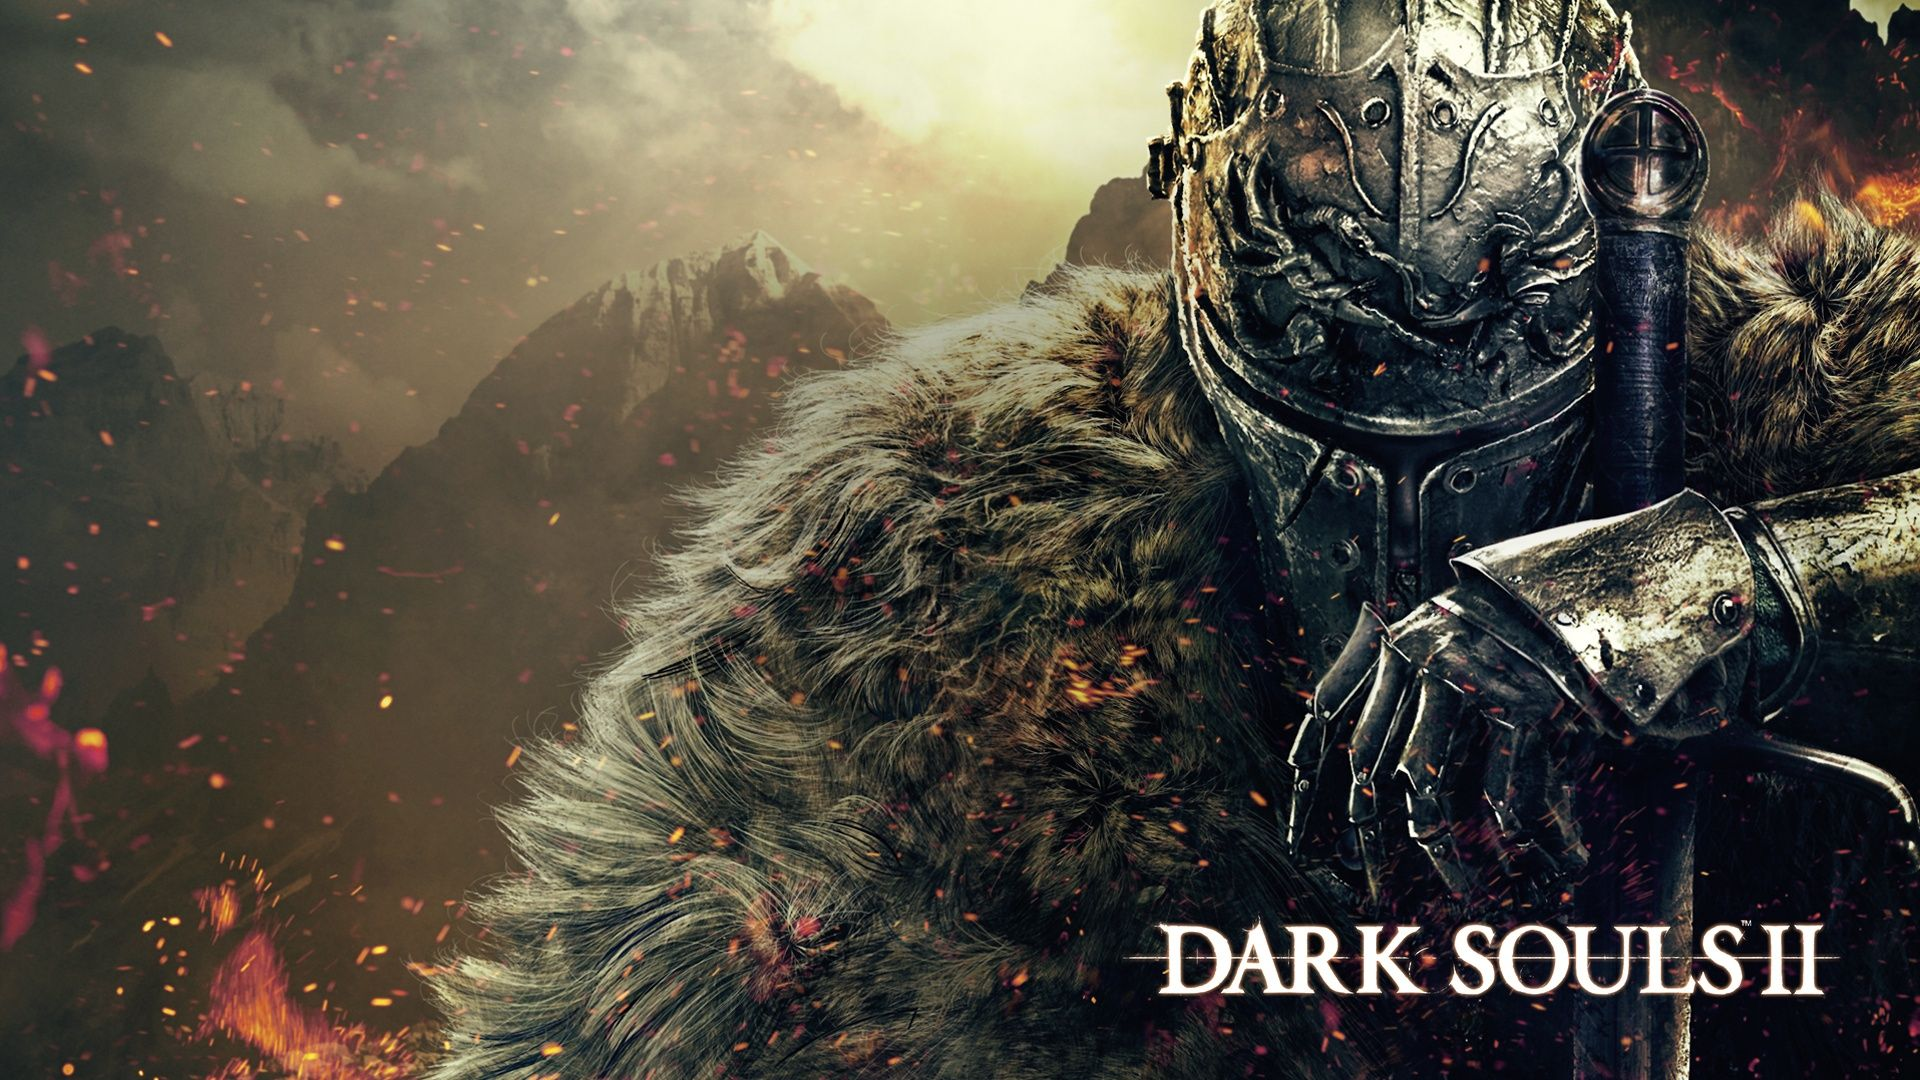 Dark Souls Ii Wallpaper Best Wallpaper Hd Dark Souls Dark Souls 2 Dark Souls 3